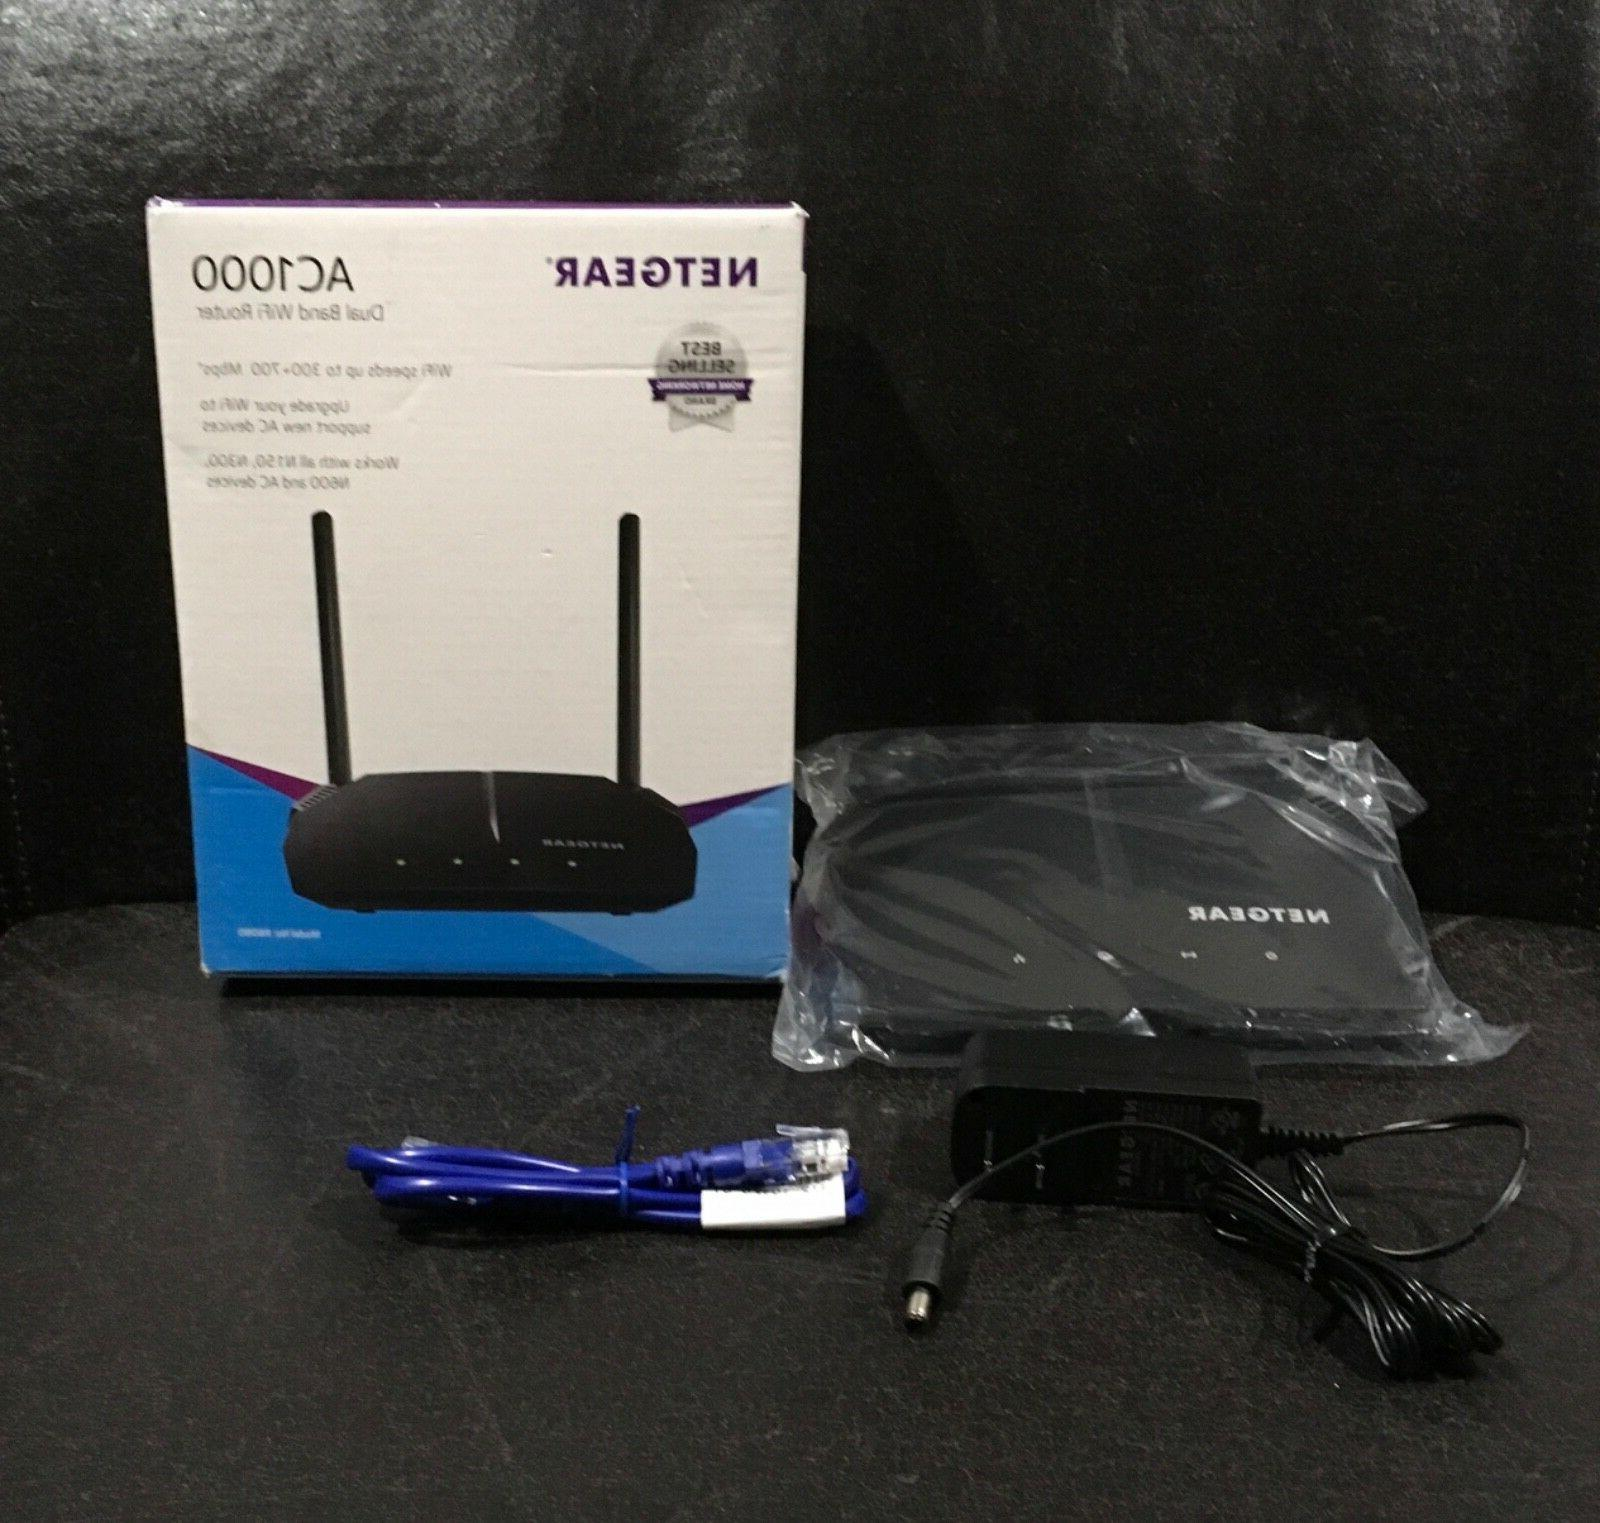 NETGEAR AC1000 Band Smart WiFi Router, Ethernet